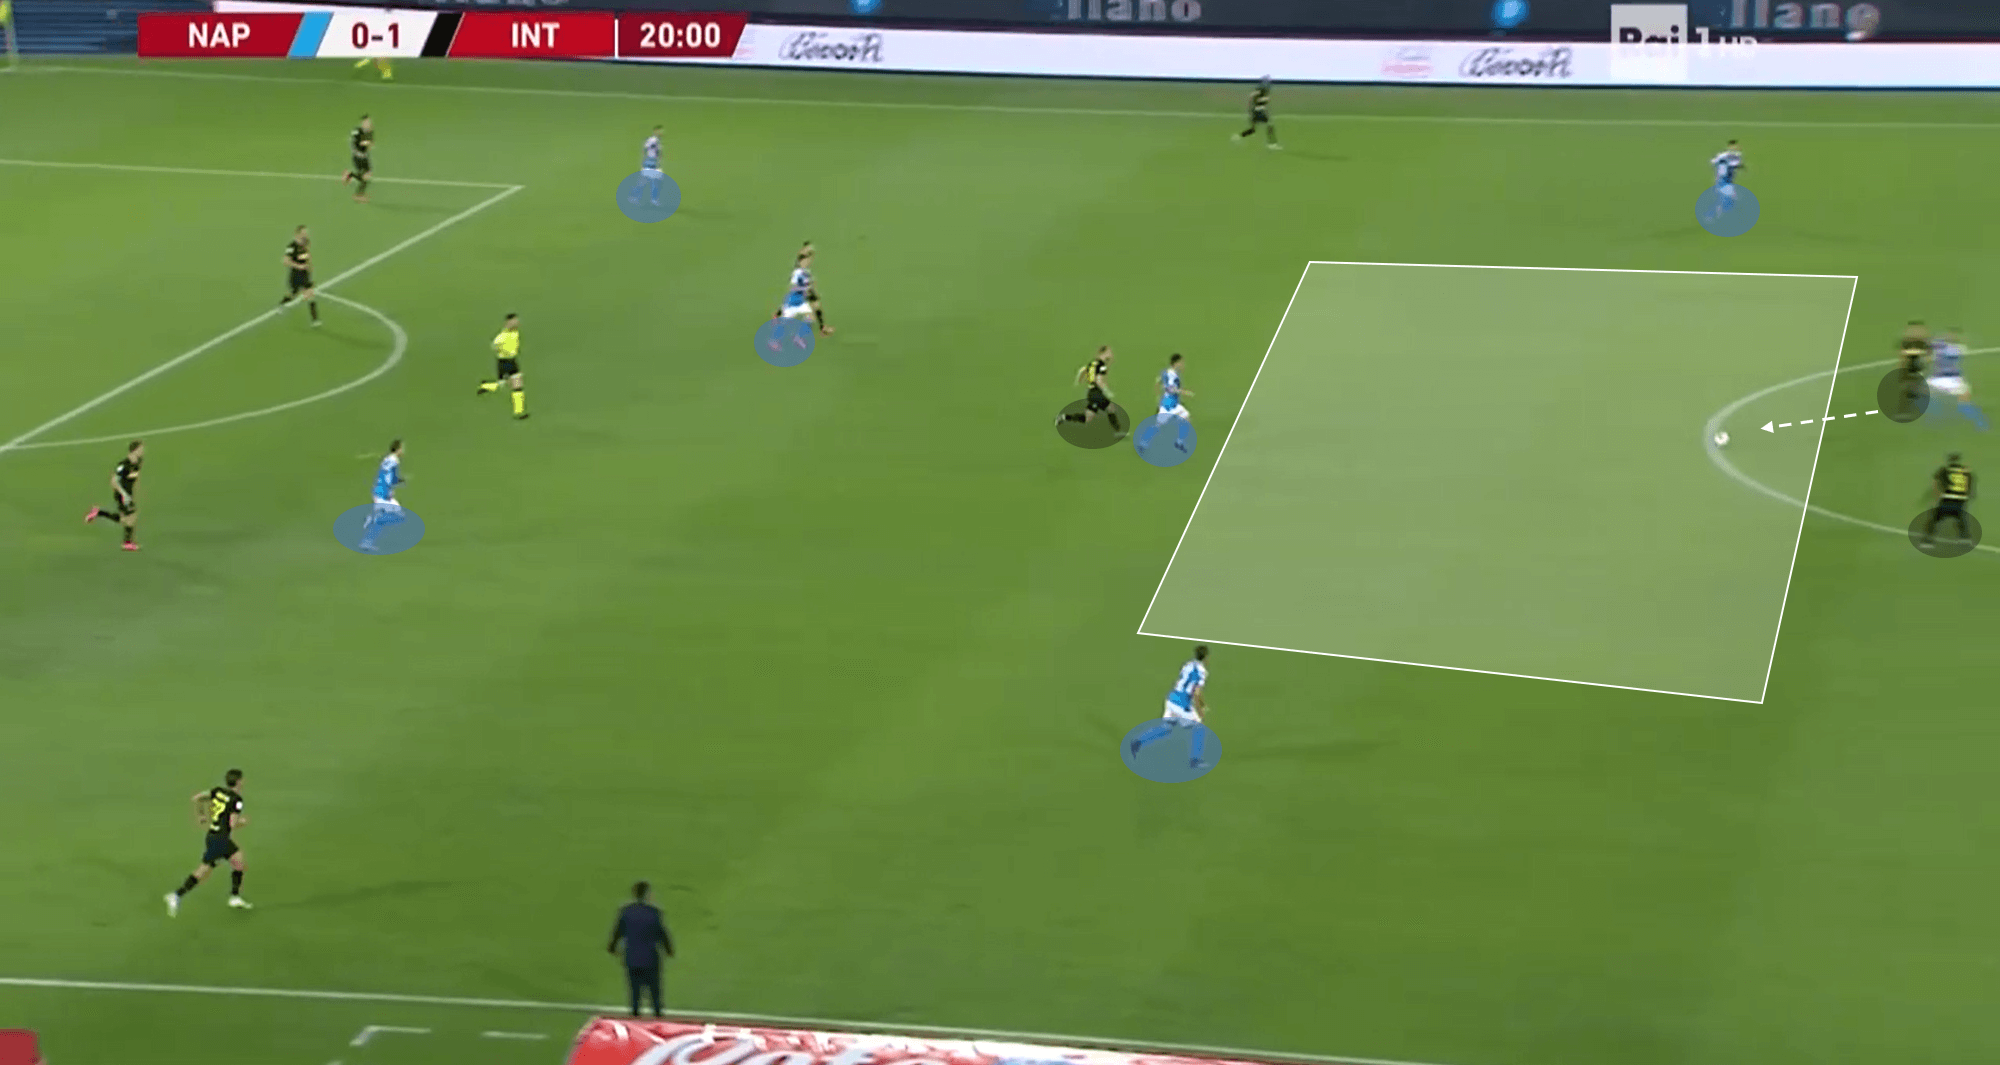 Coppa Italia 2019/20: Inter vs Napoli – tactical analysis – tactics